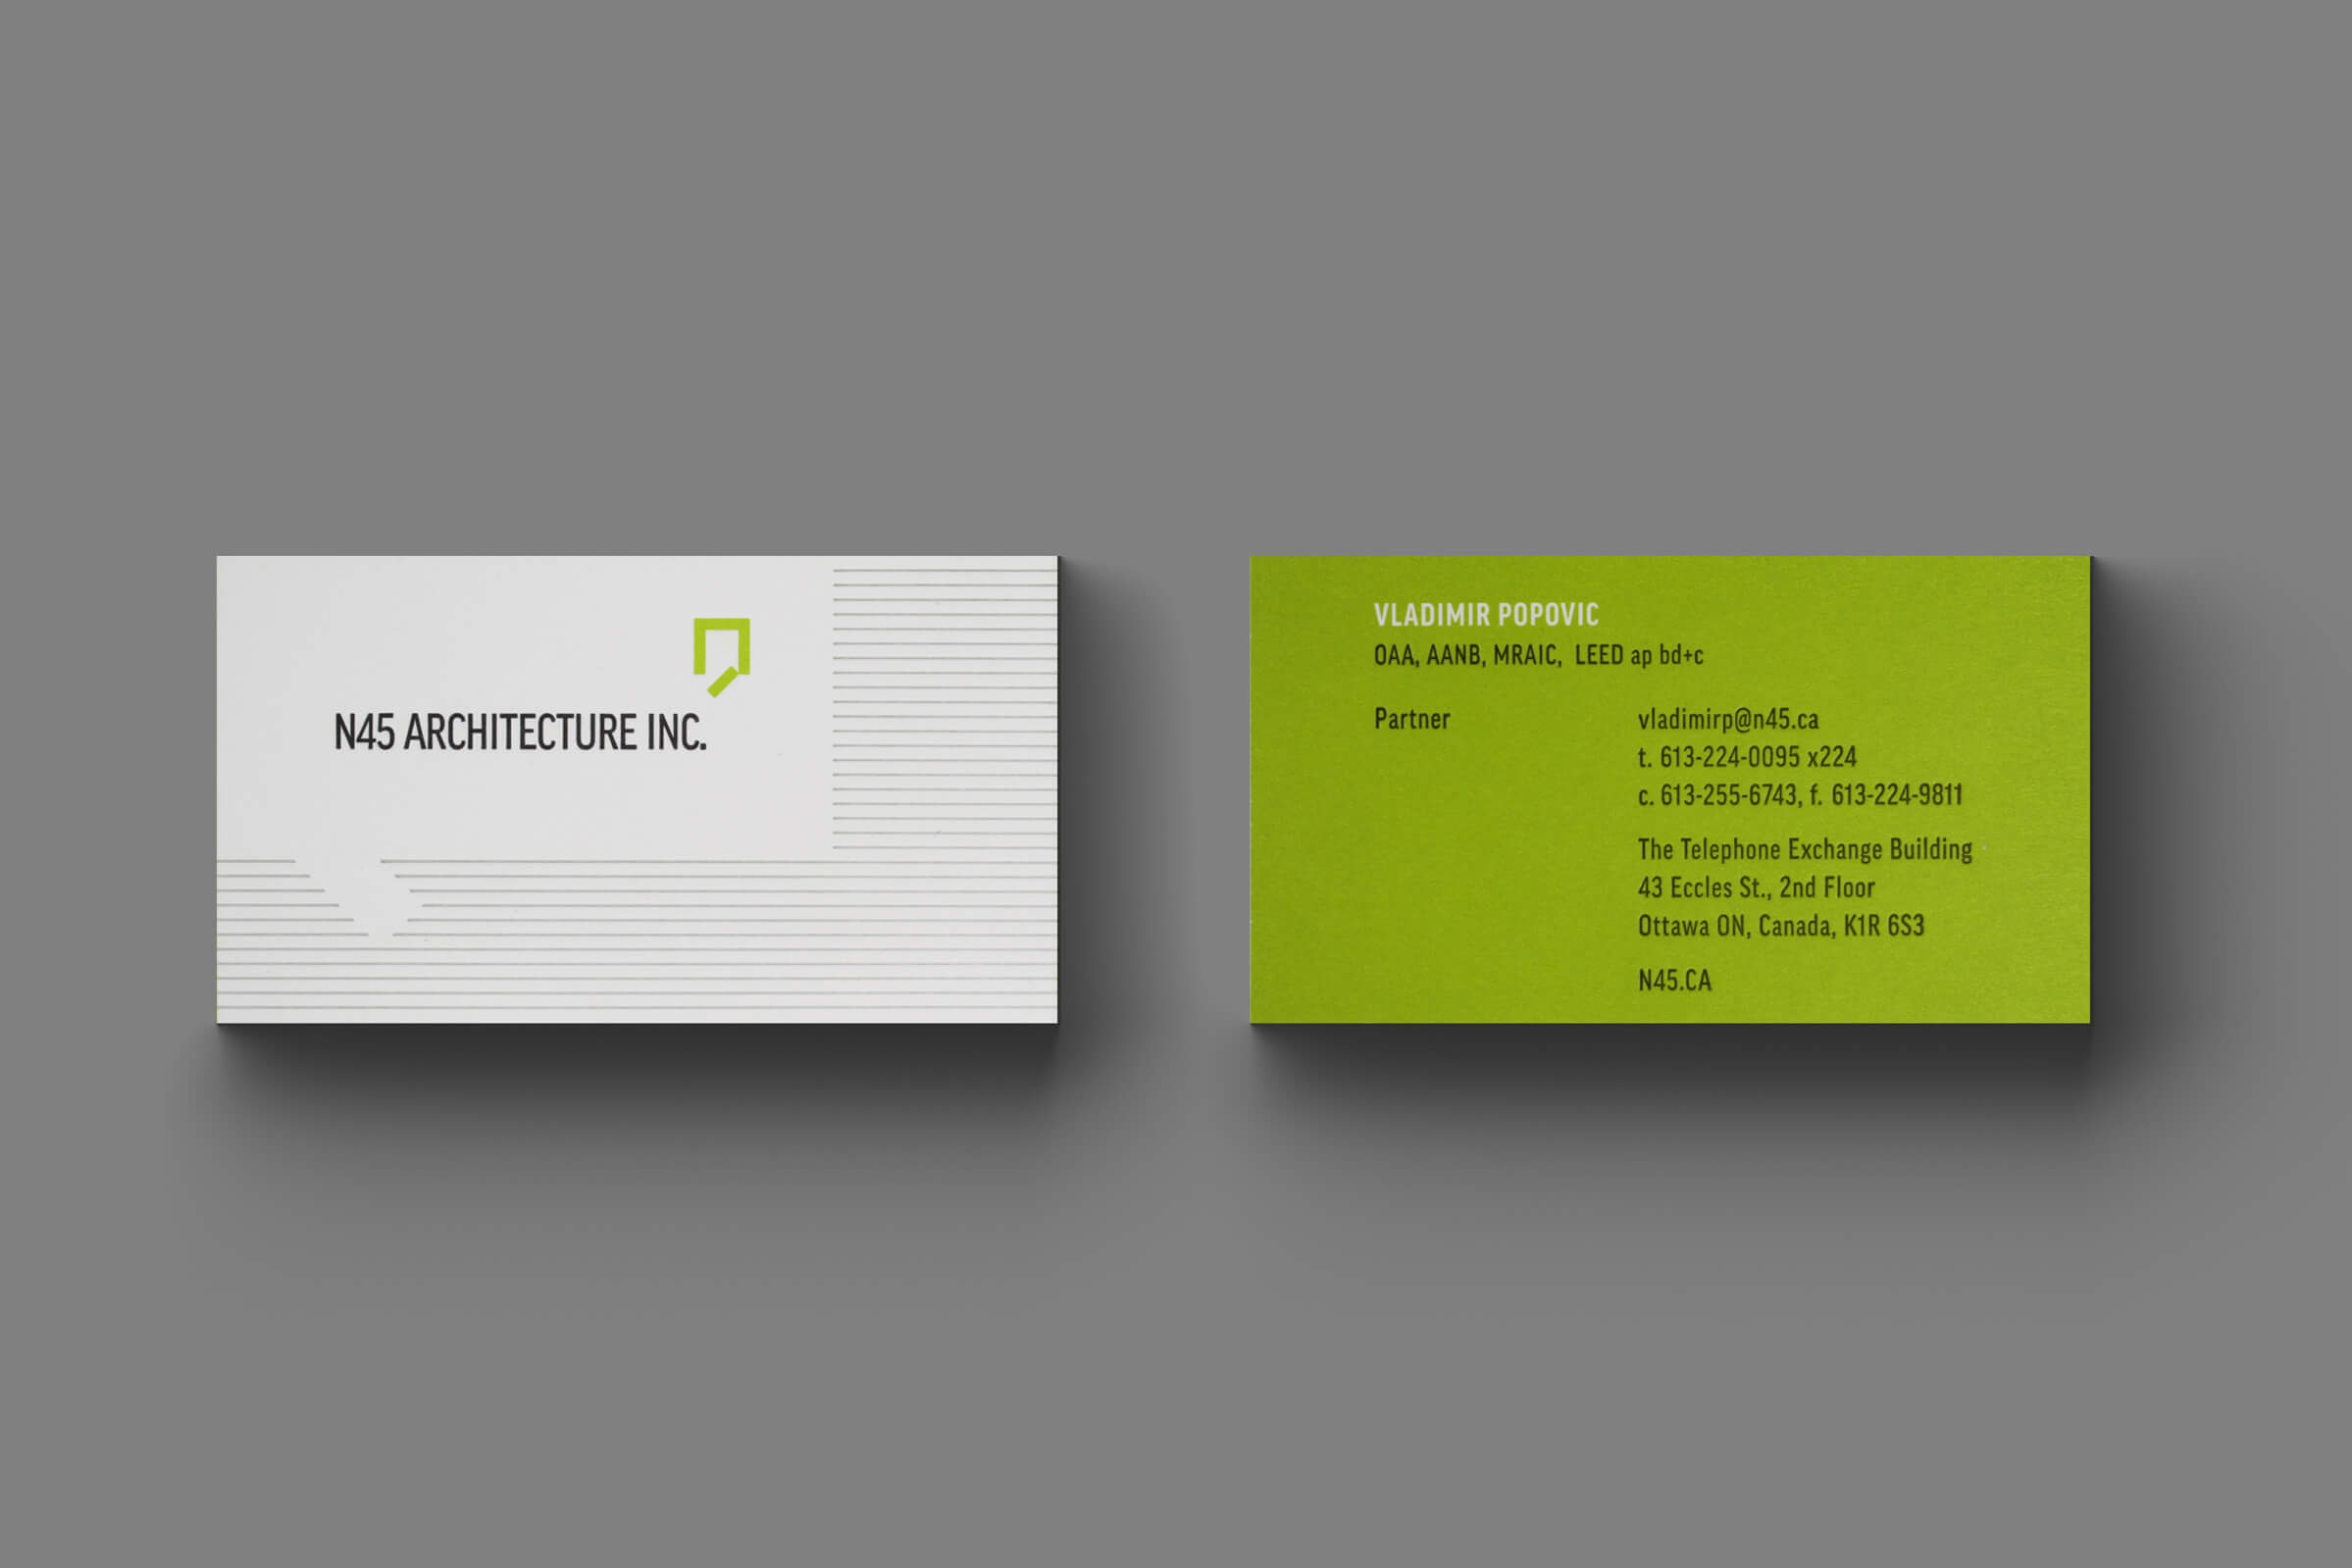 Letterpress Business Card for N45 Architecture Inc., architects by Graphic Designer idApostle